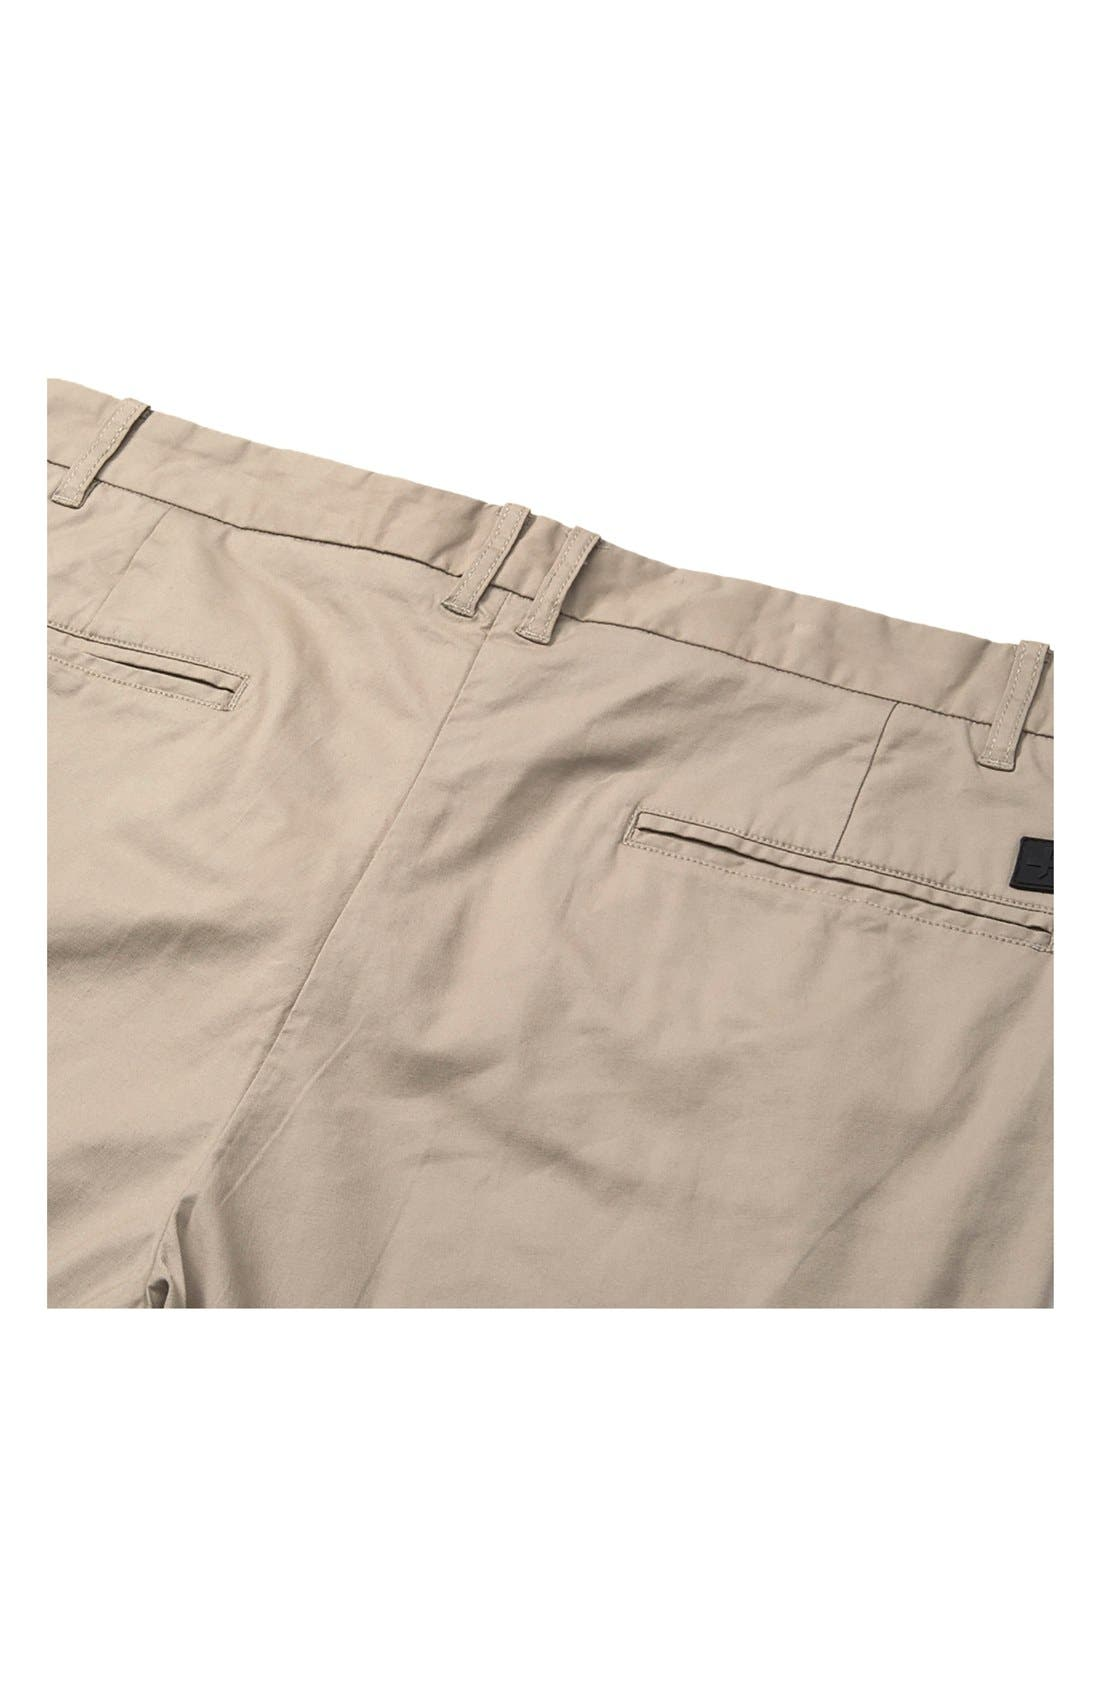 'Arroyo' Crop Stretch Chinos,                             Alternate thumbnail 4, color,                             Clay